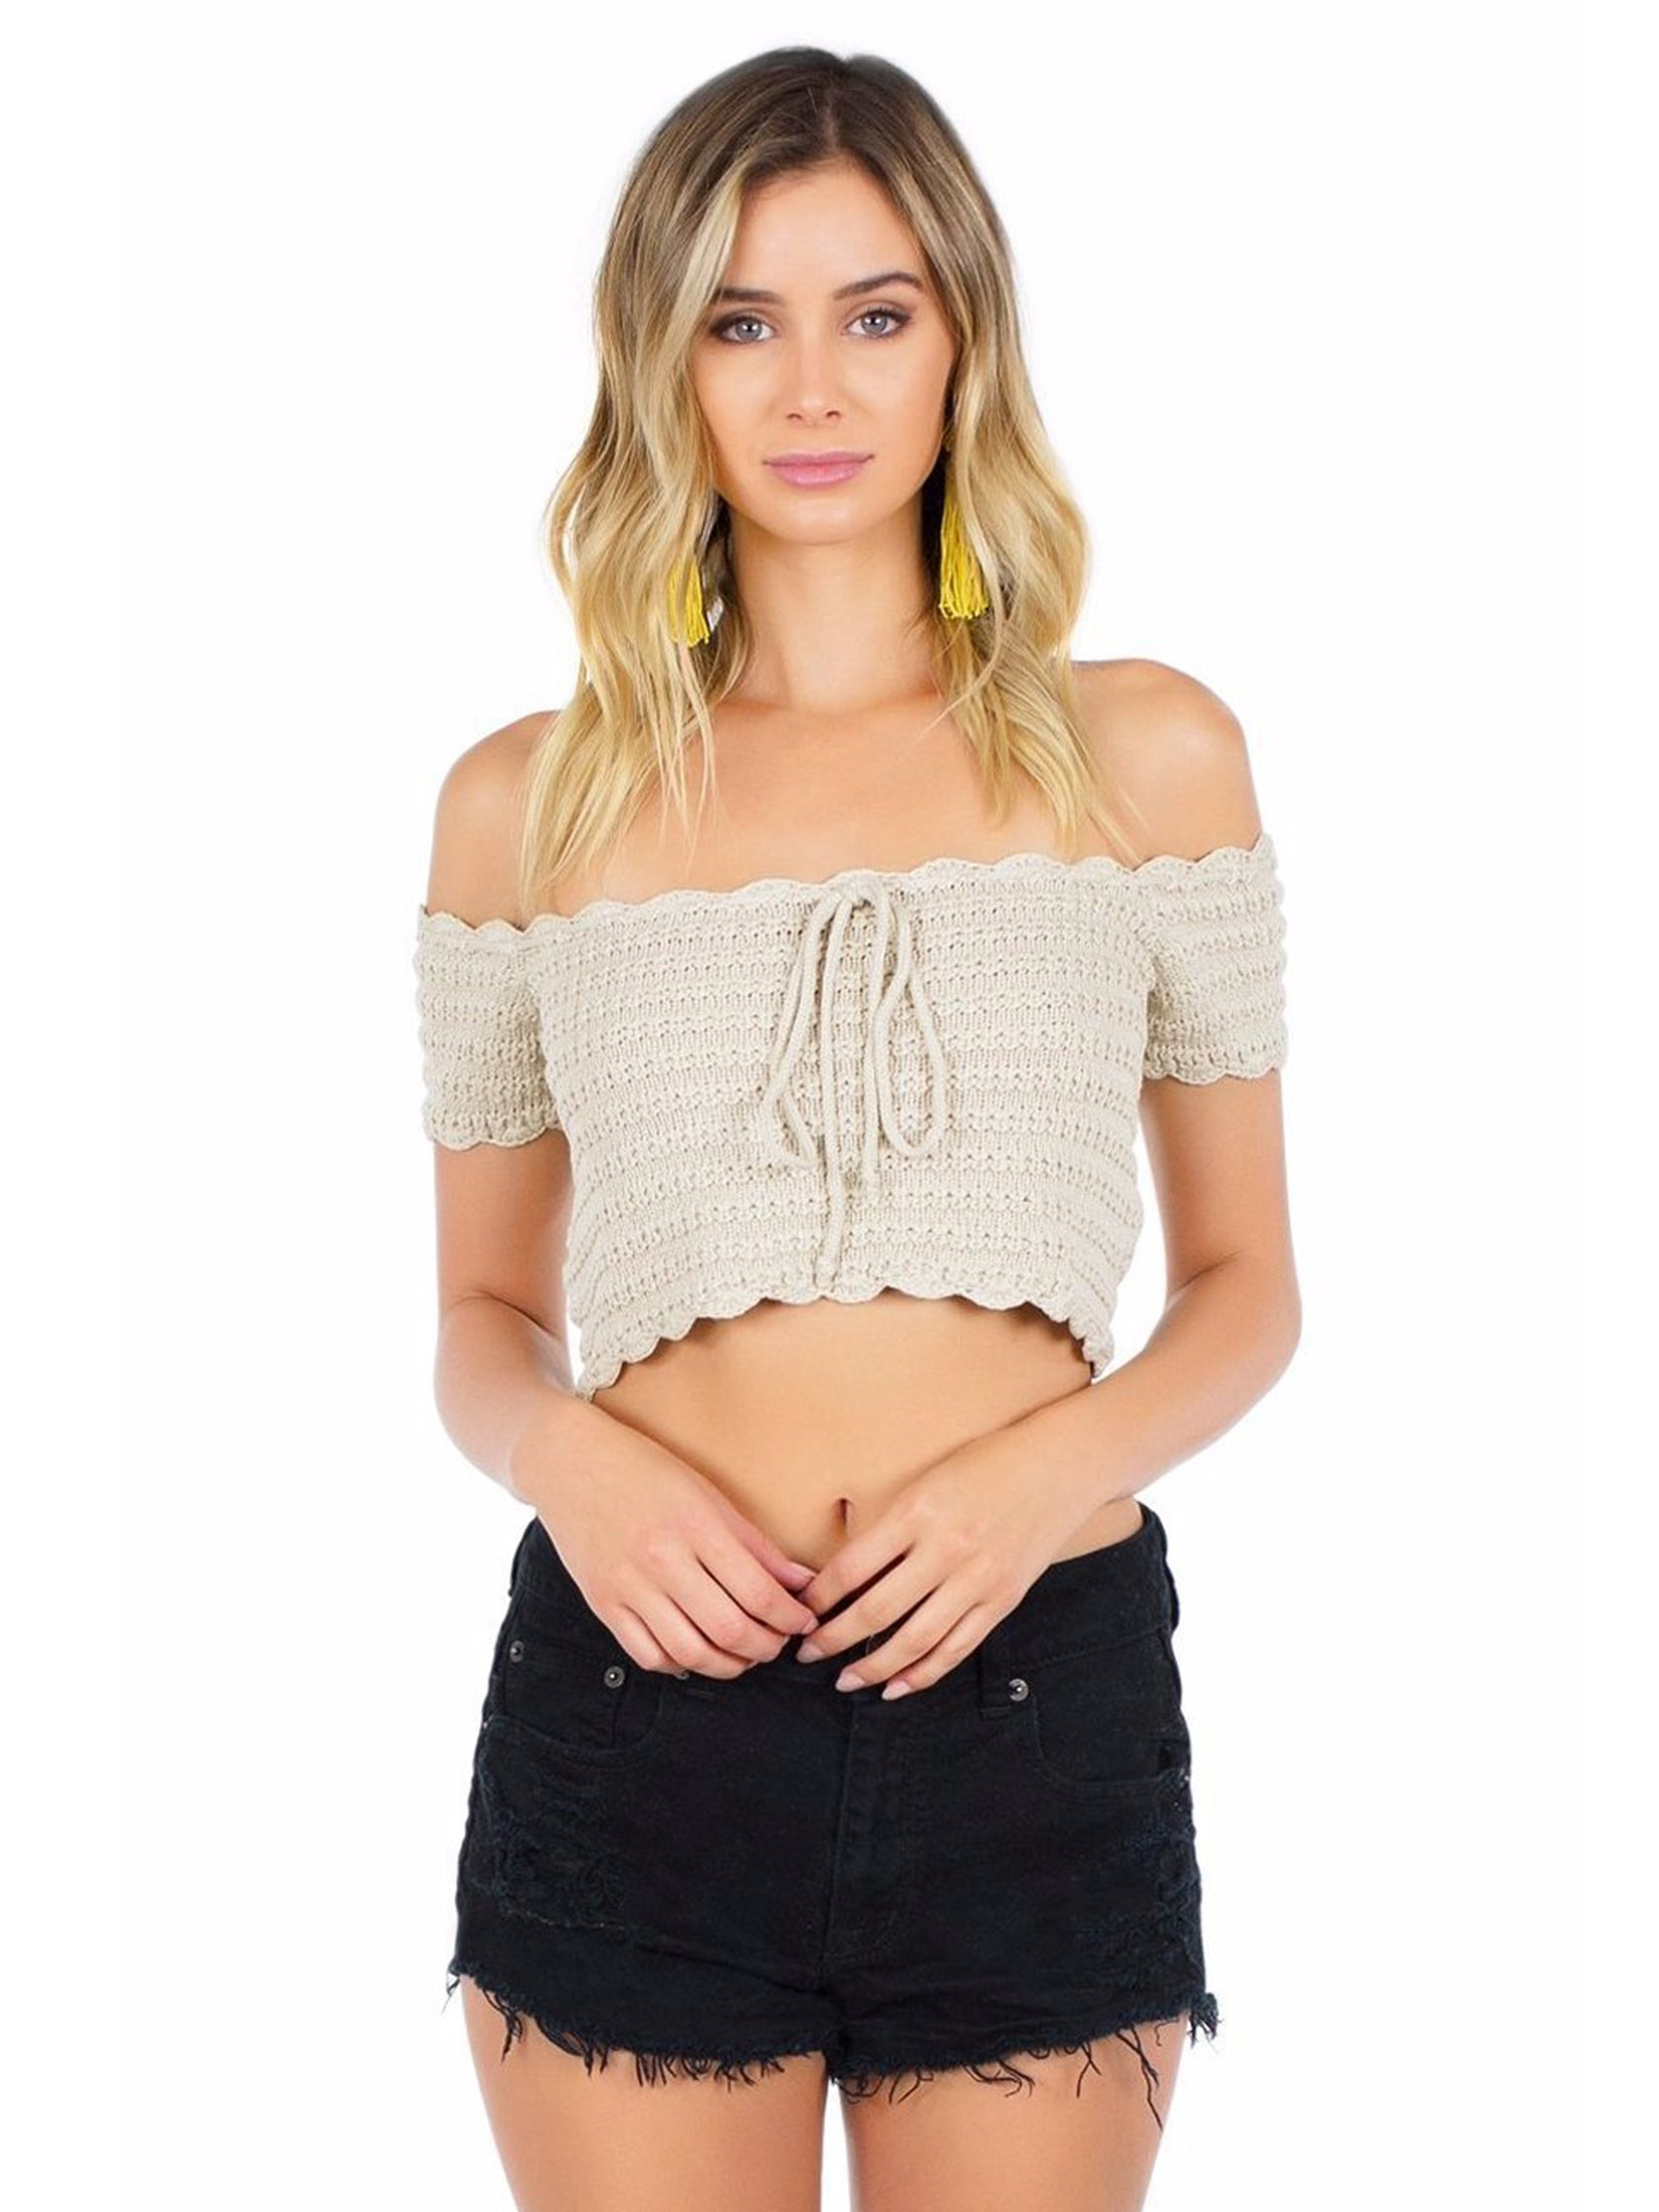 Woman wearing a top rental from WYLDR called Break The Rules Crochet Crop Top